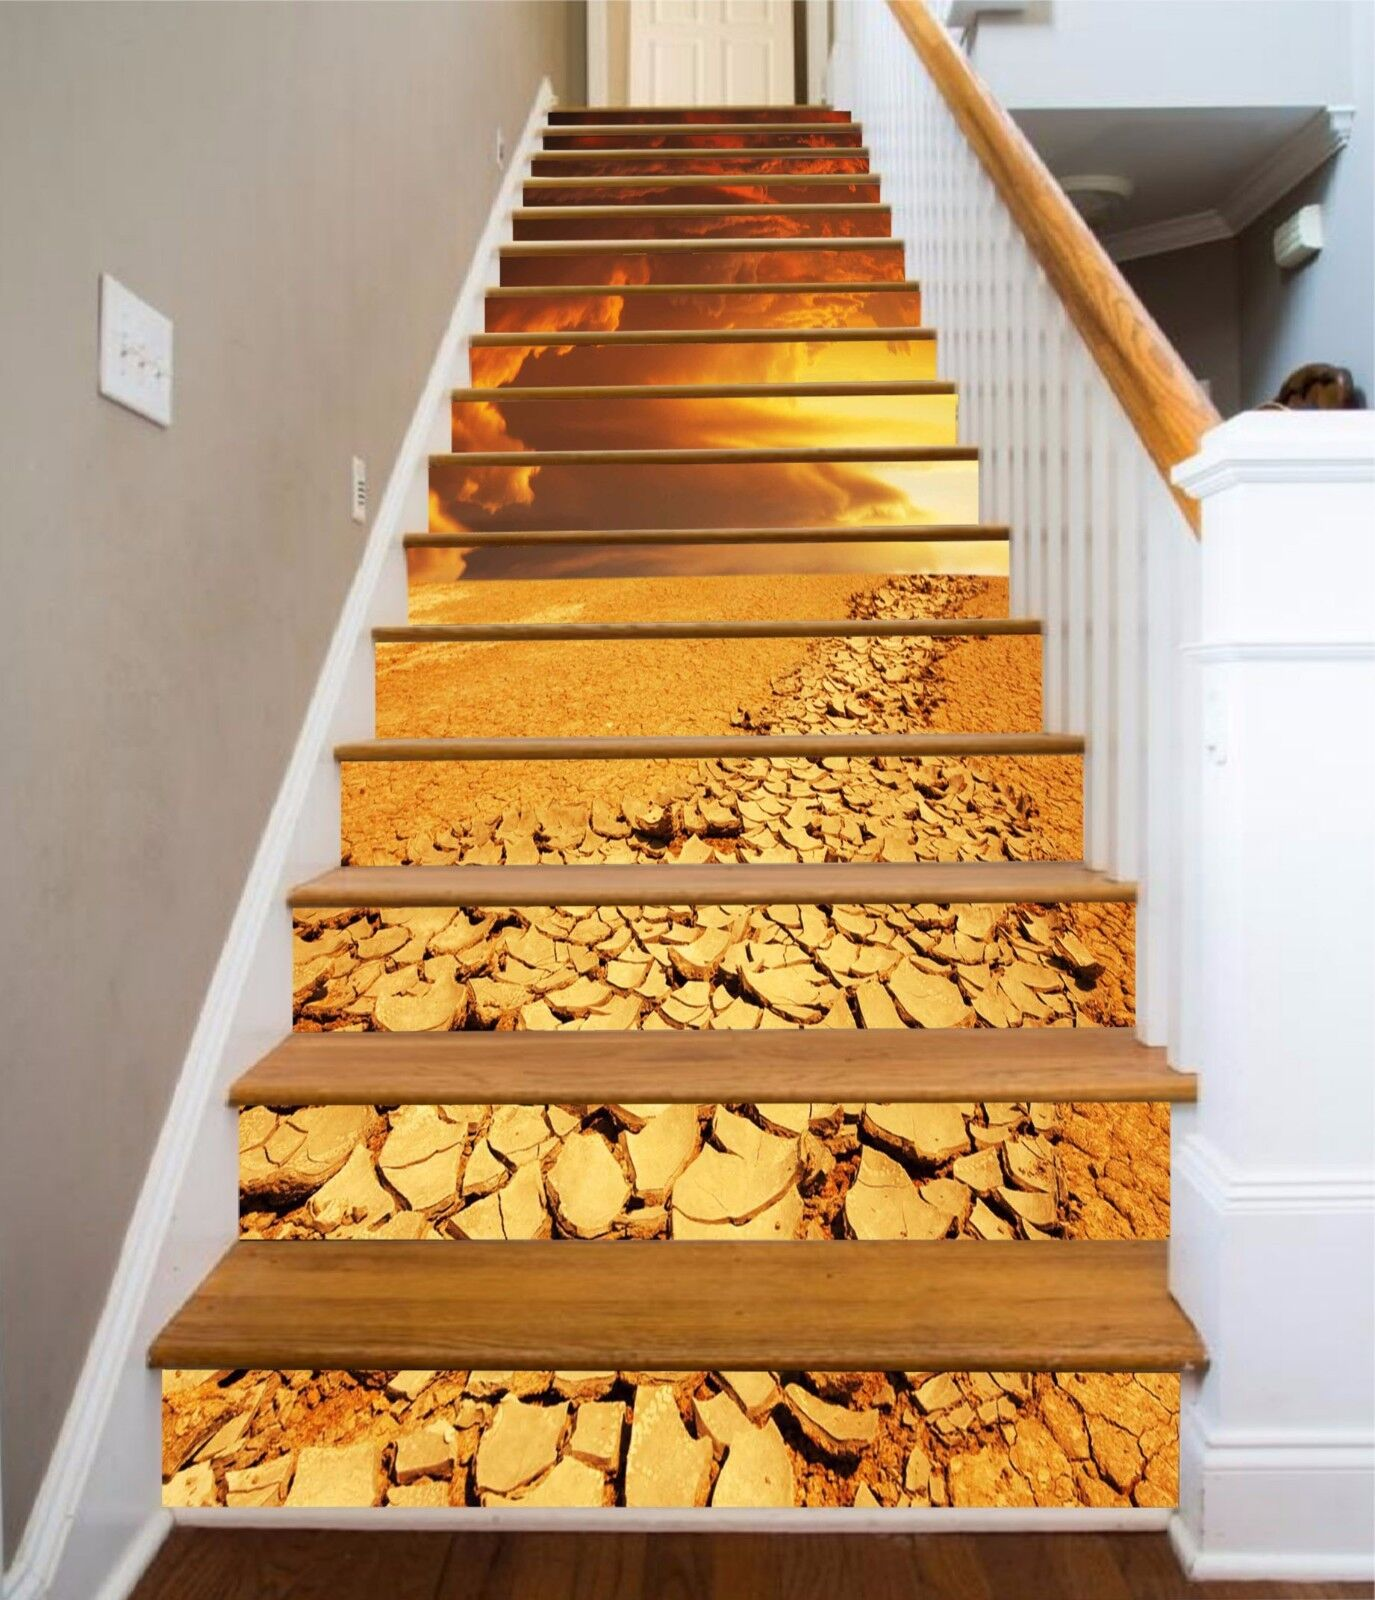 3D Dry Ground 943 Stair Risers Decoration Photo Mural Vinyl Decal Wallpaper AU